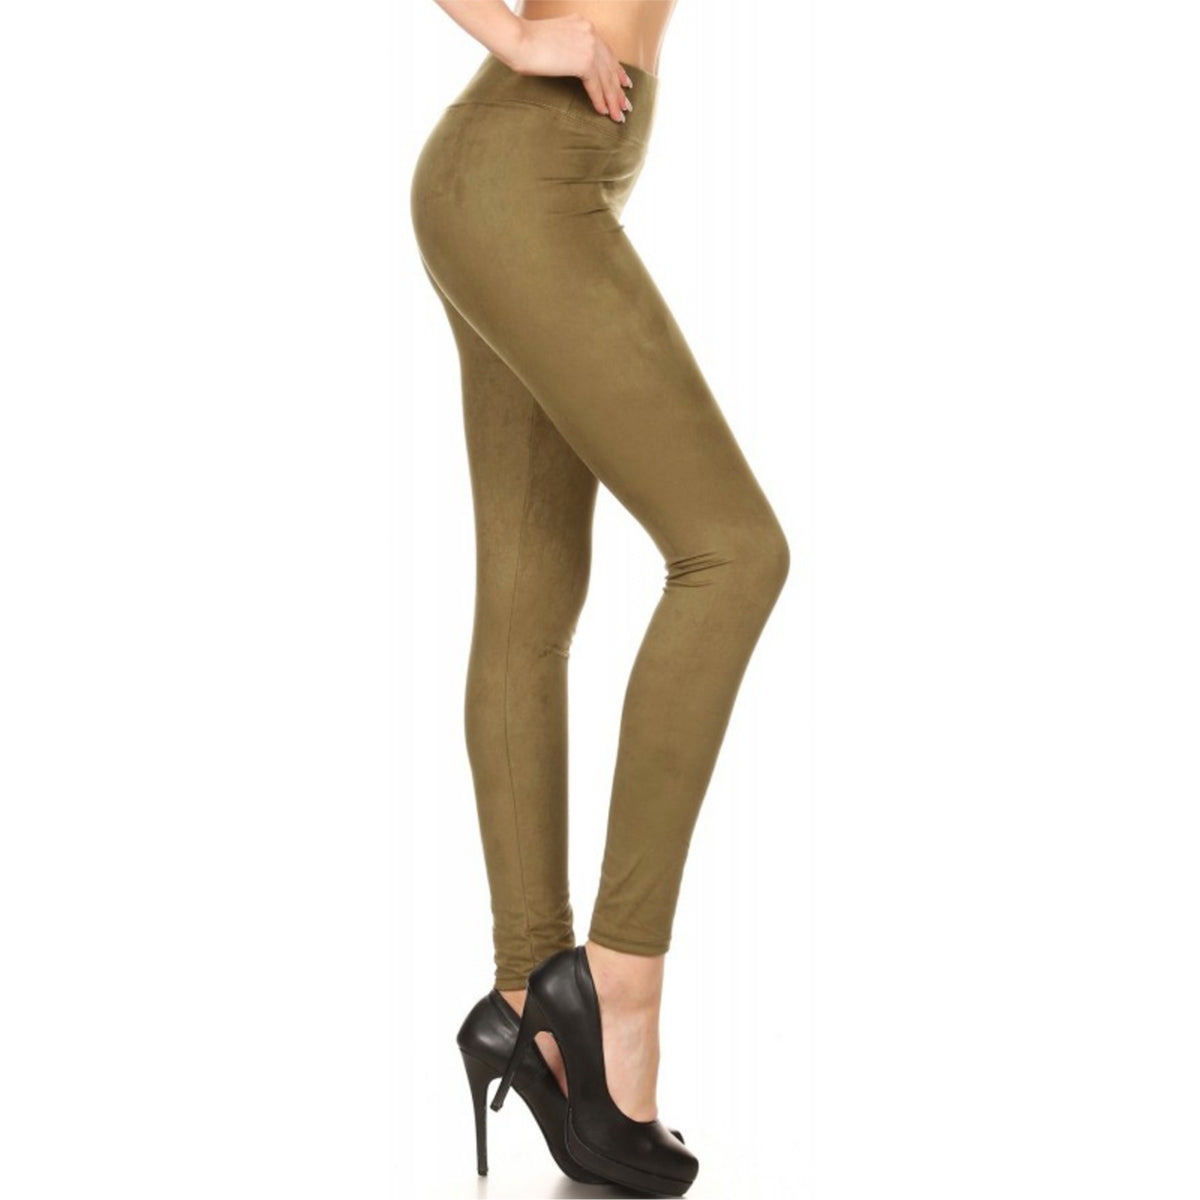 LAVRA Women's Soft Faux Suede Legging High Waist Full Length Solid Pants